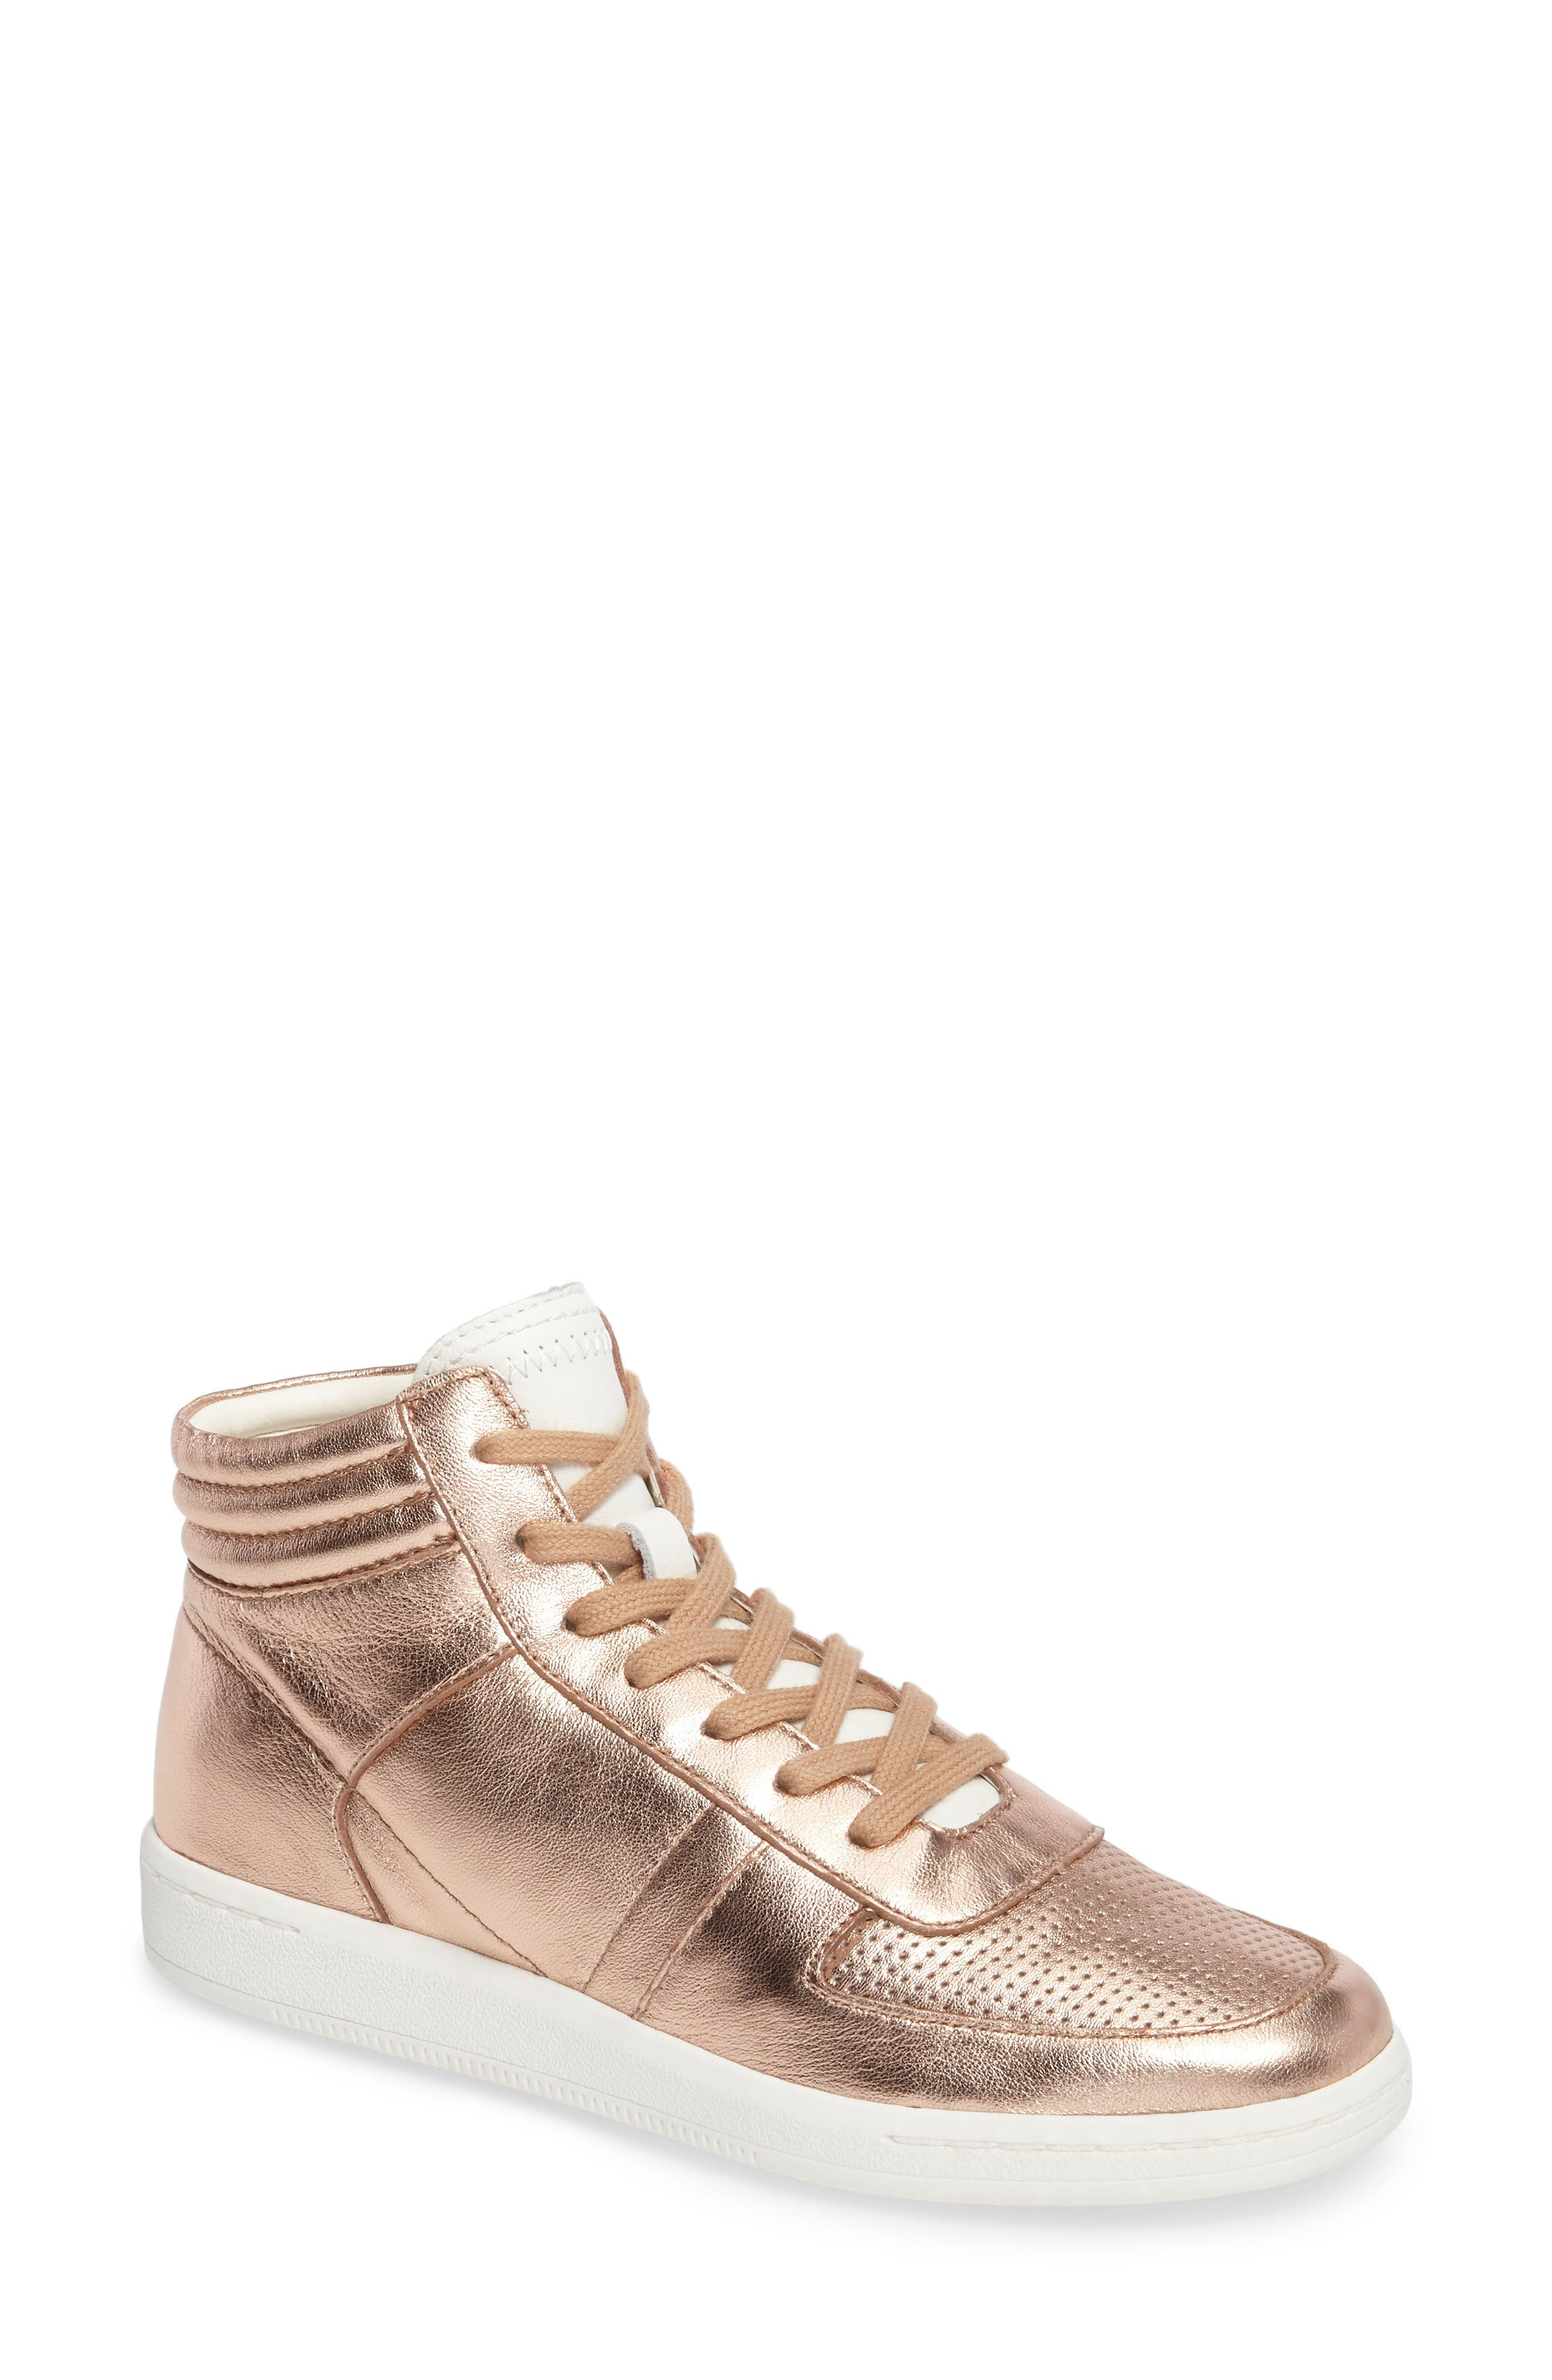 Image of Dolce Vita Nate High Top Sneaker